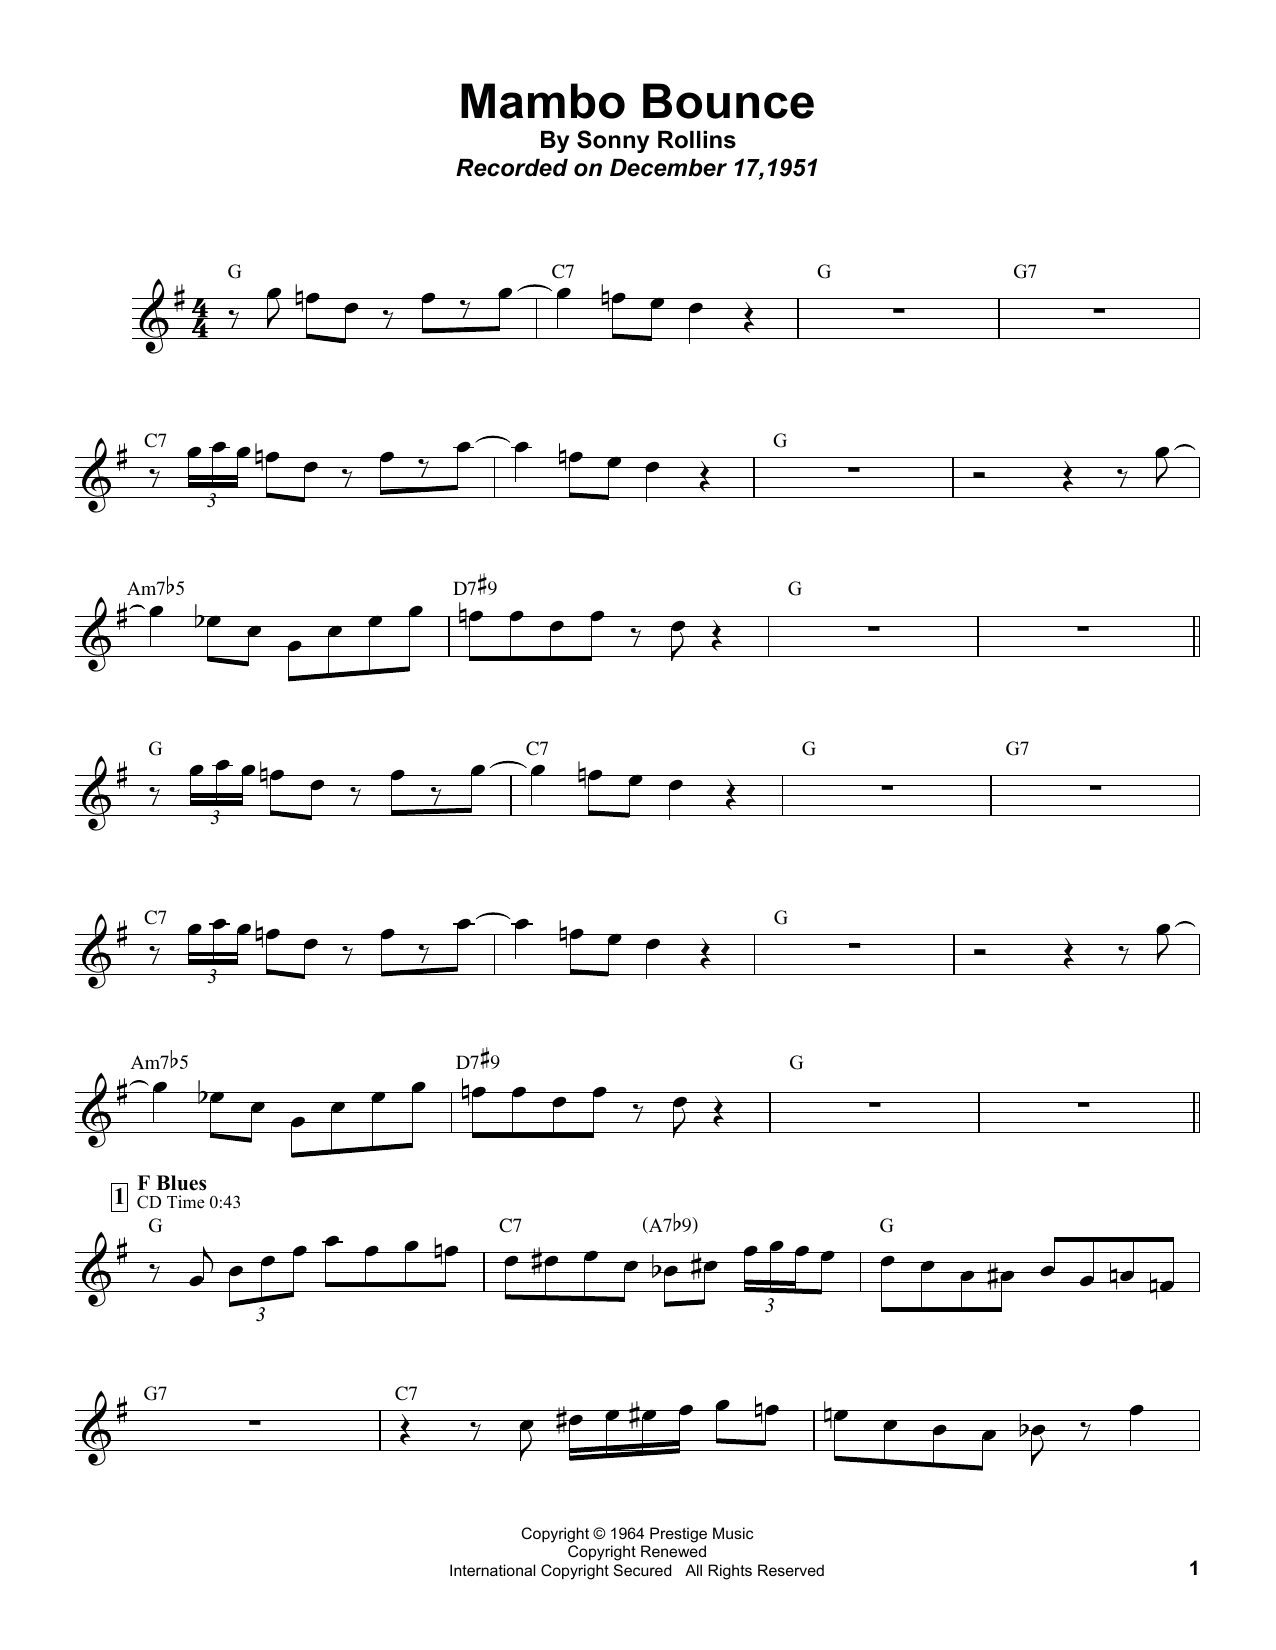 Sonny Rollins Mambo Bounce sheet music notes and chords